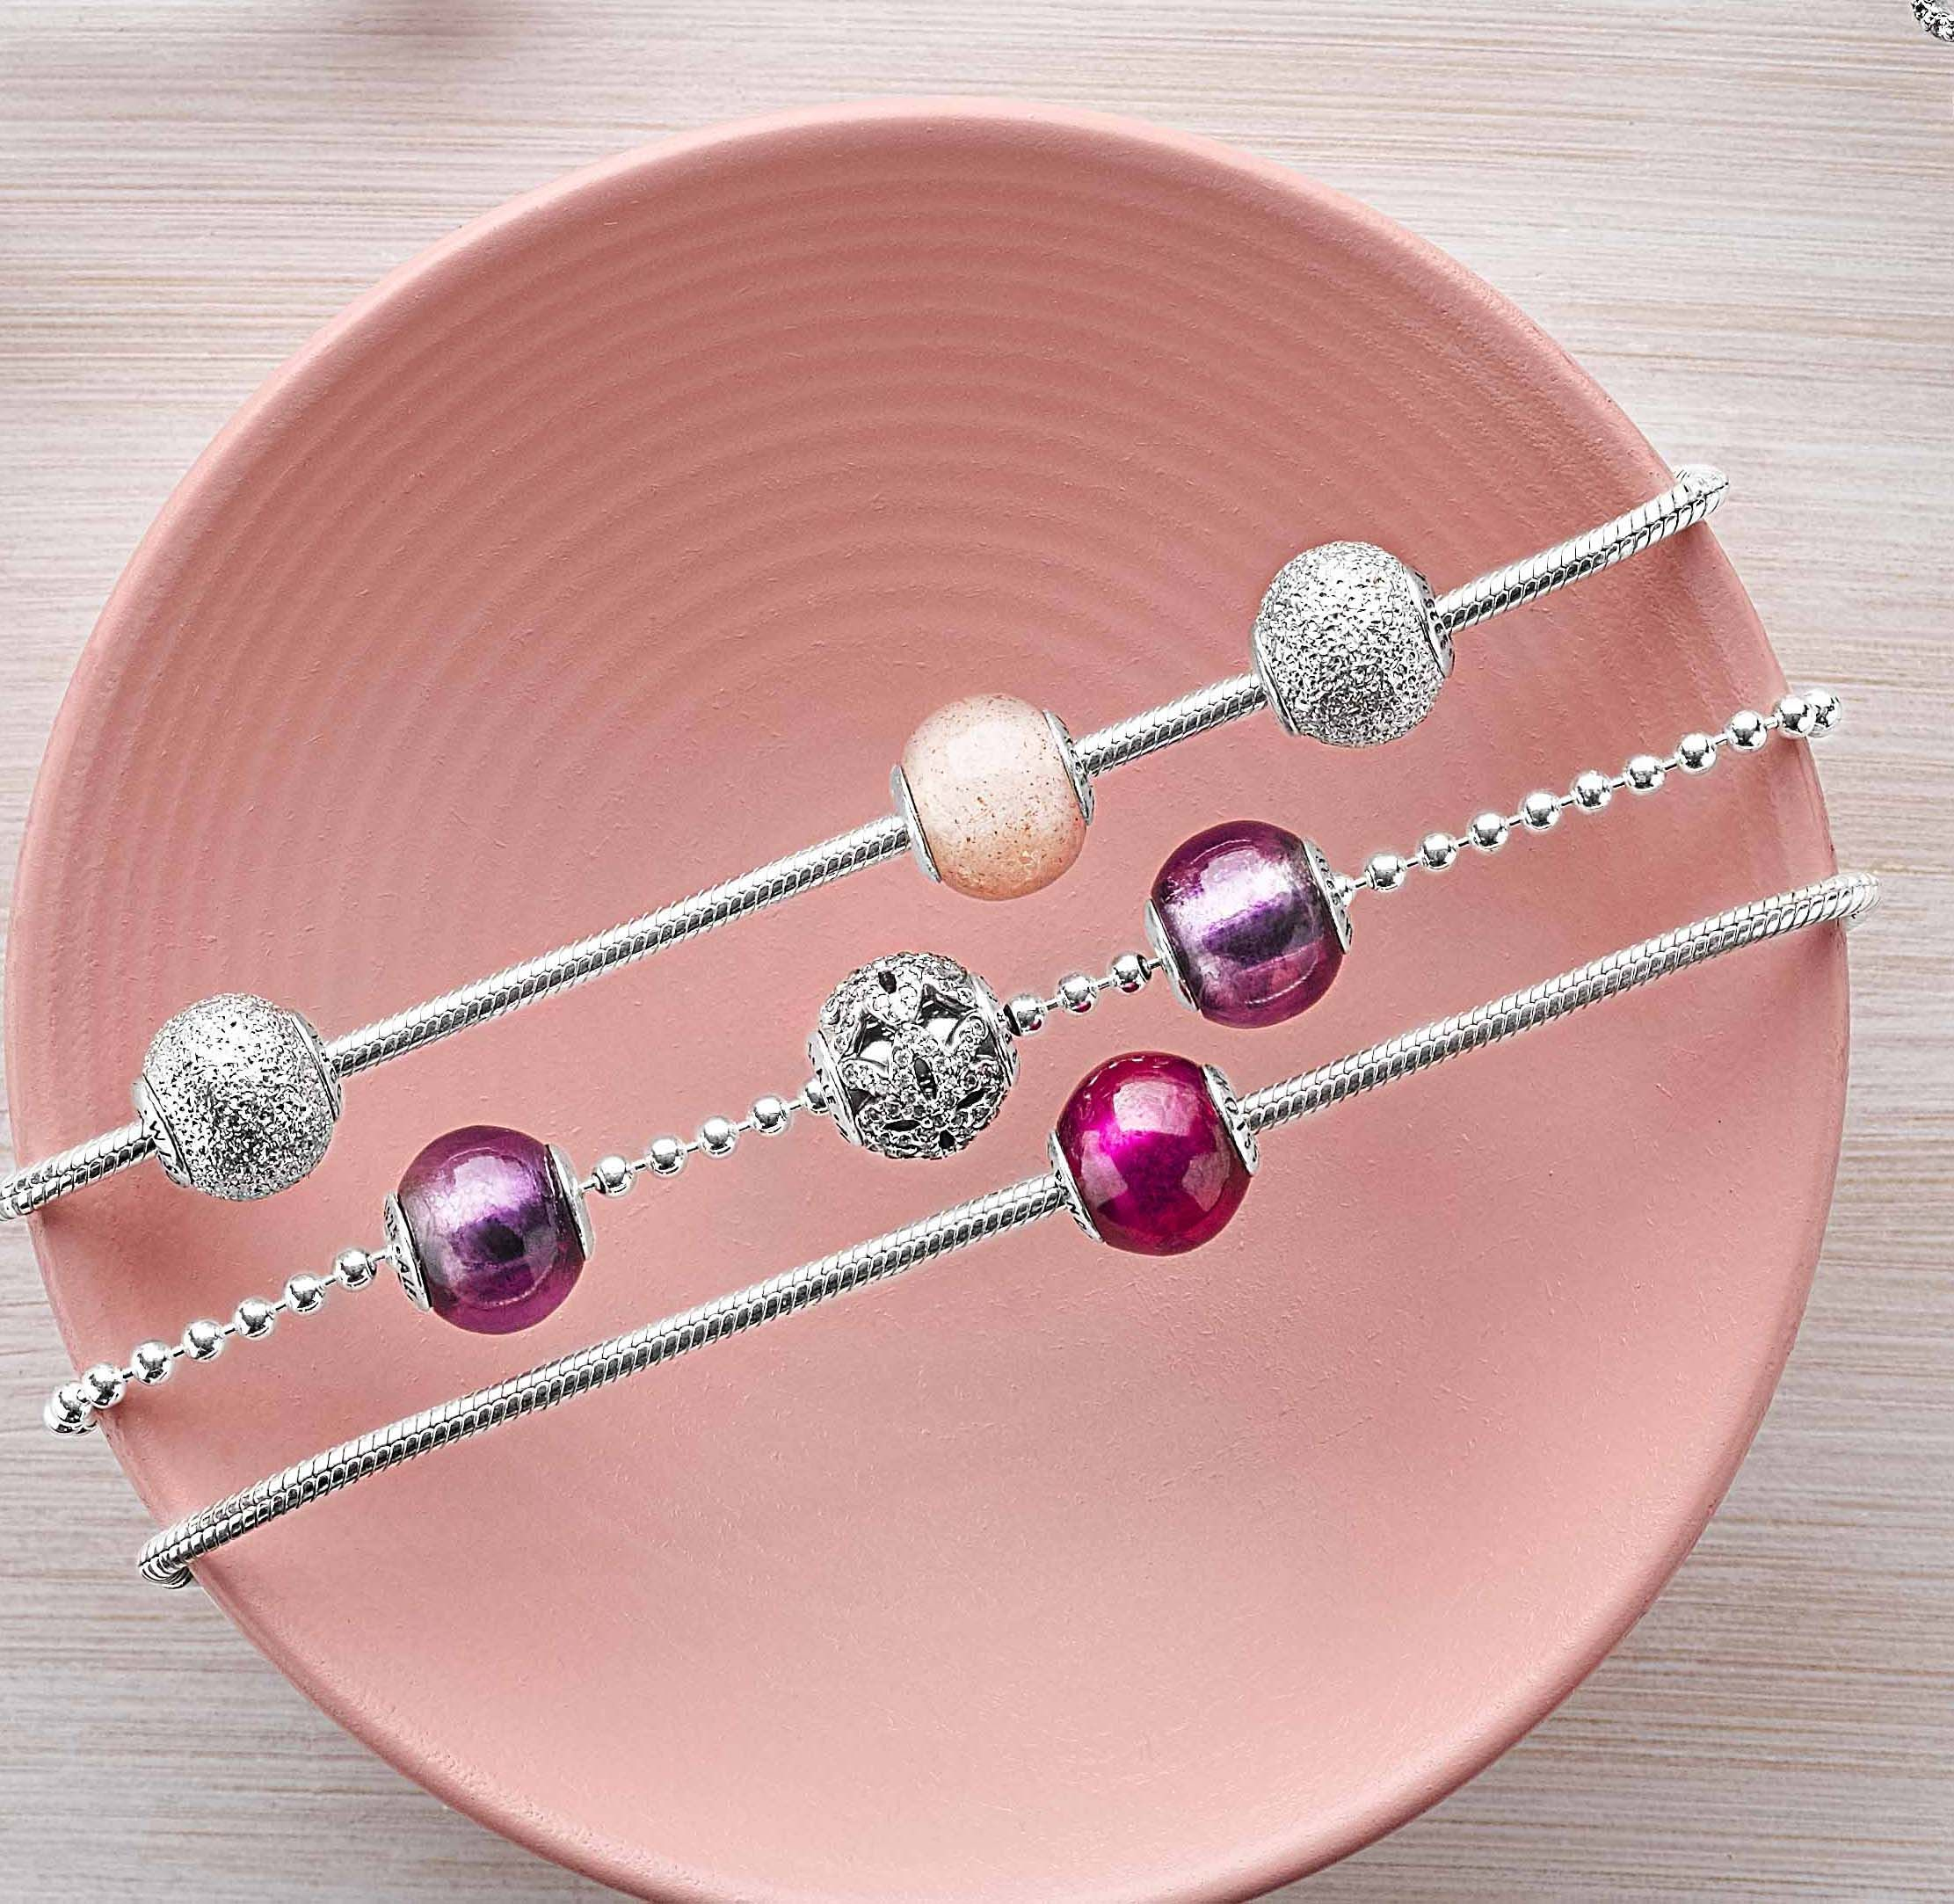 Pandora Jewelry Online Retailers: Having A Hard Time Adding Color To Your Outfit? Add Some